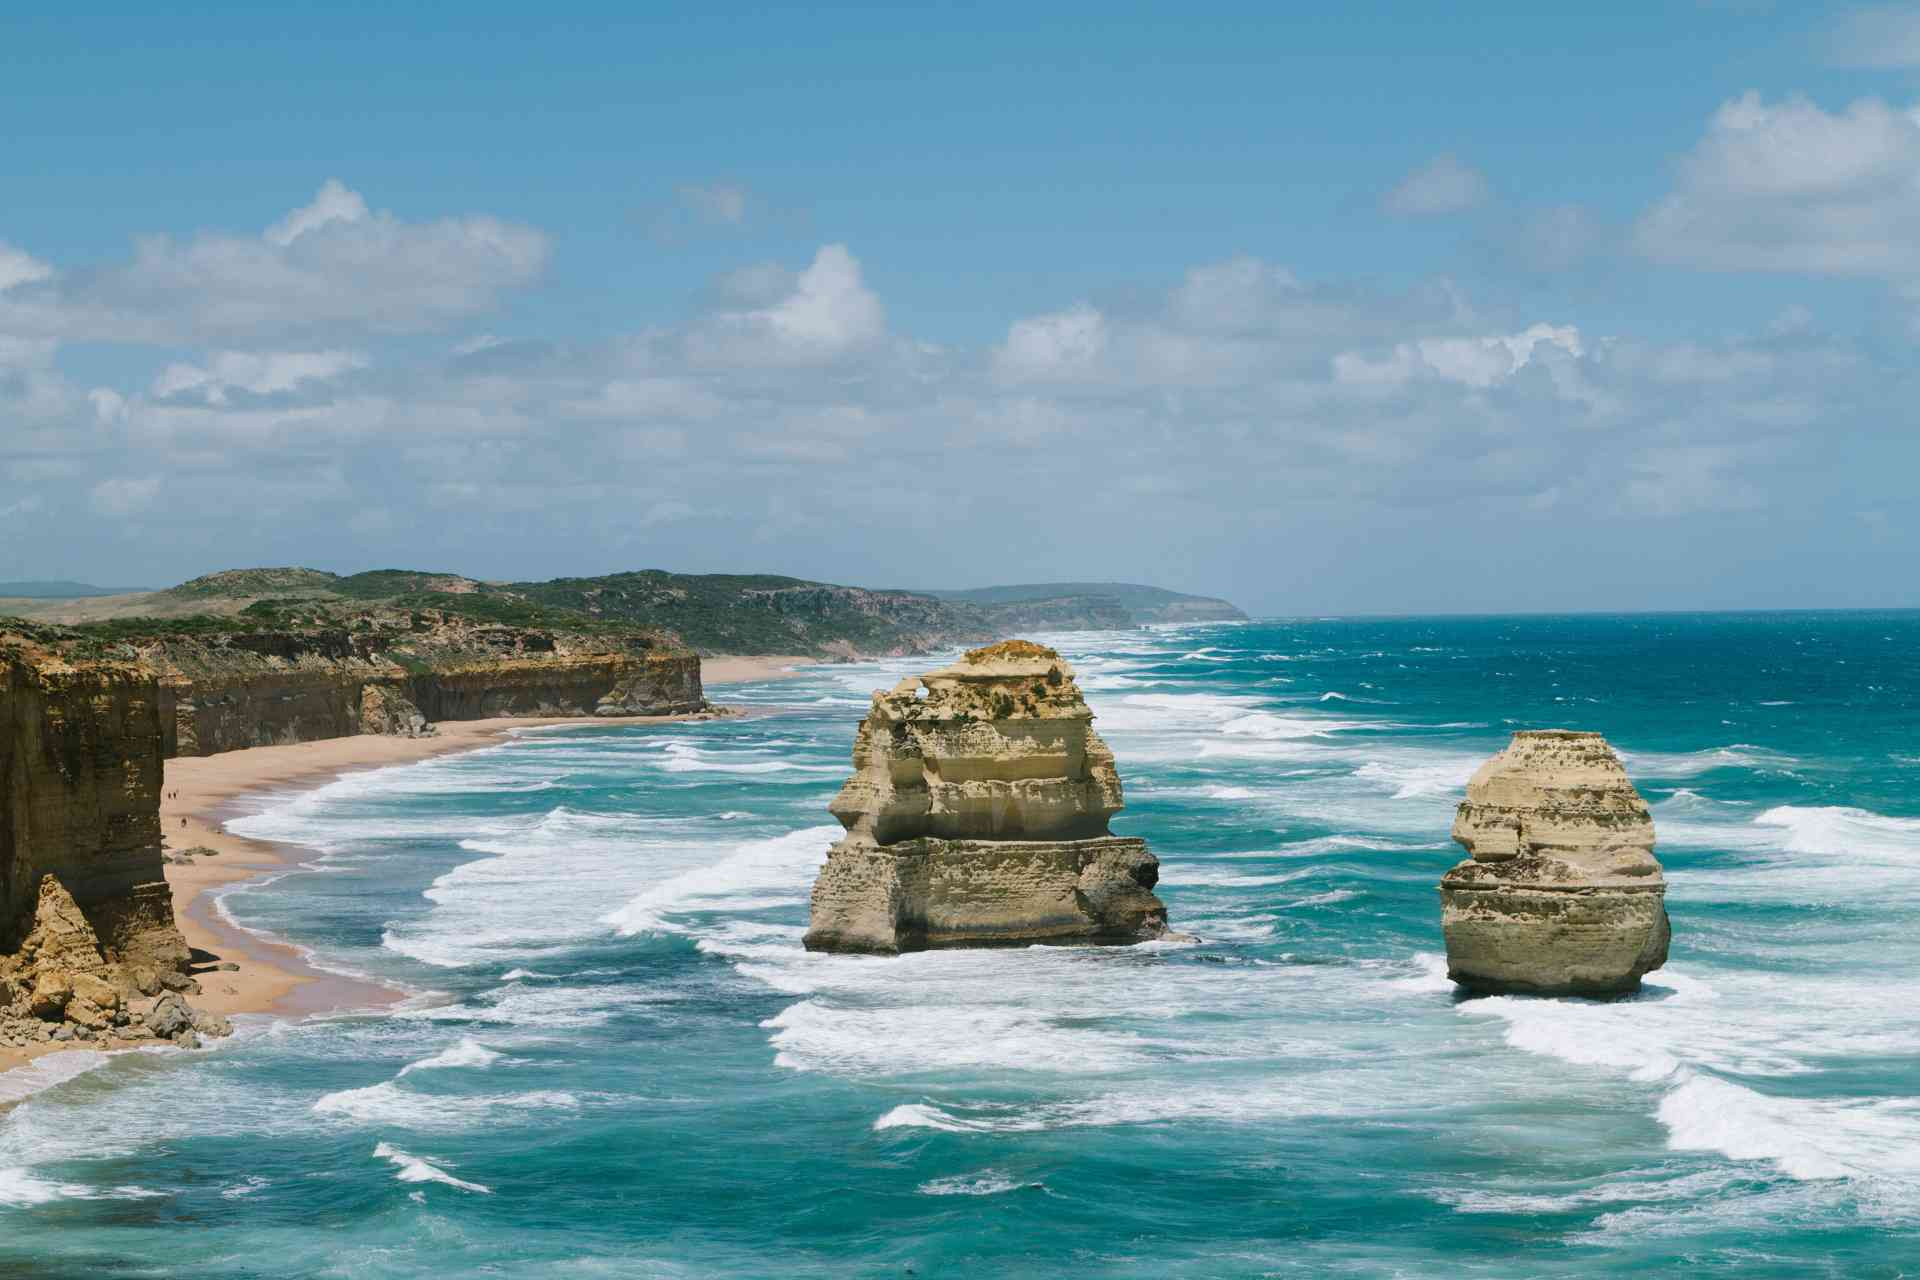 Travelling the Great Ocean Road